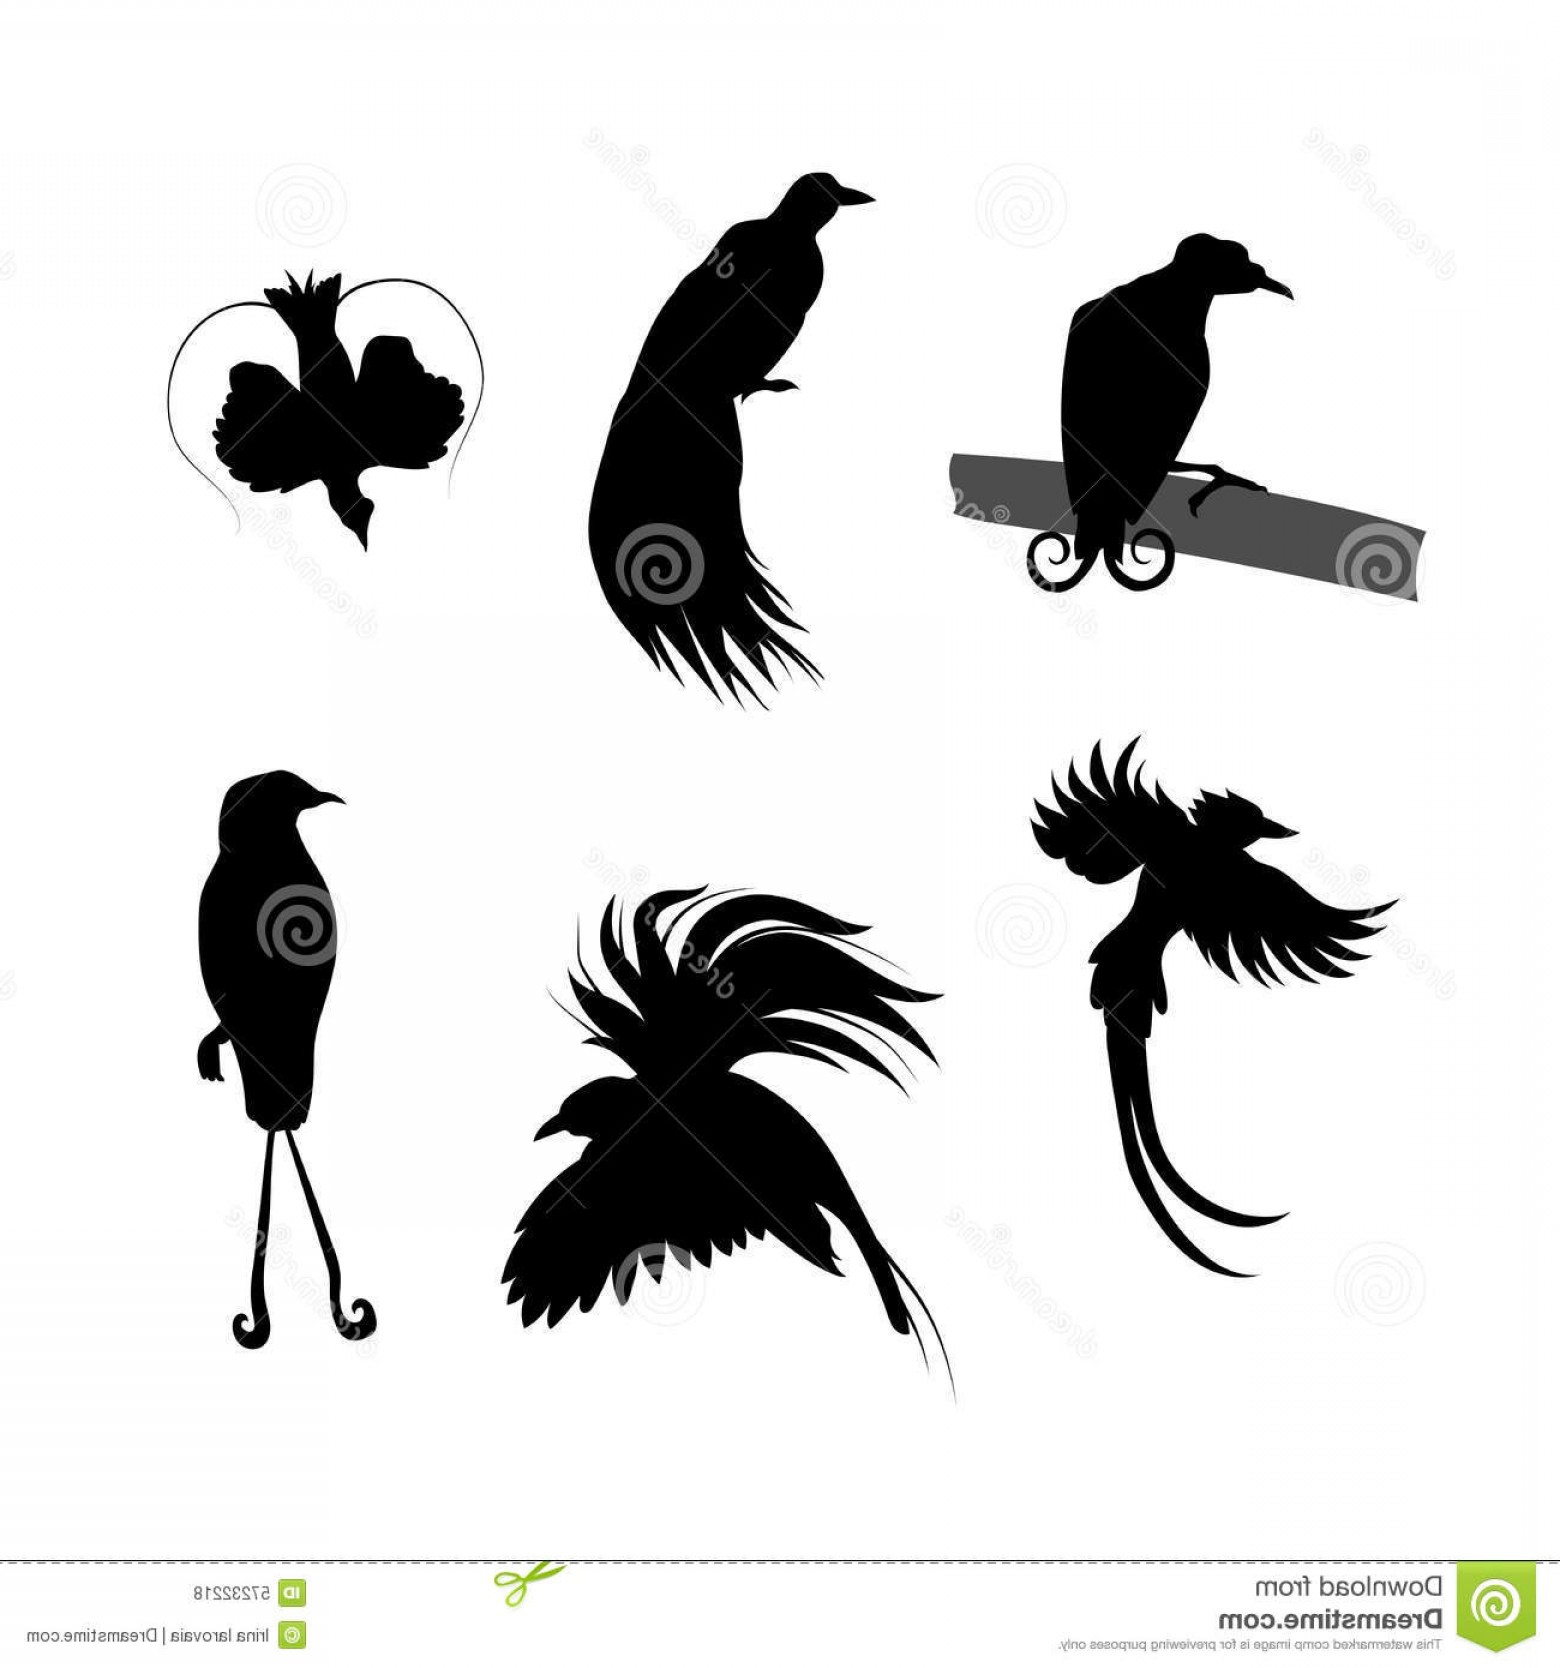 Bird In -Flight Vector Image: Stock Illustration Birds Paradise Vector Silhouettes Icons Little Illustrations Different Poses Image